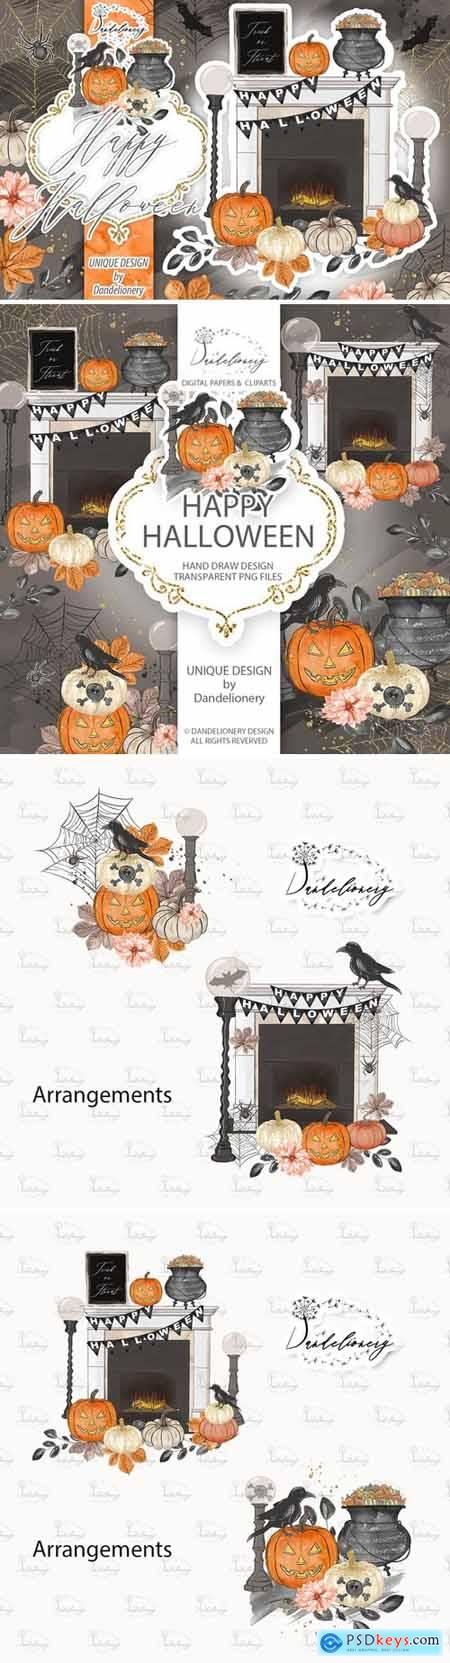 Happy Halloween design